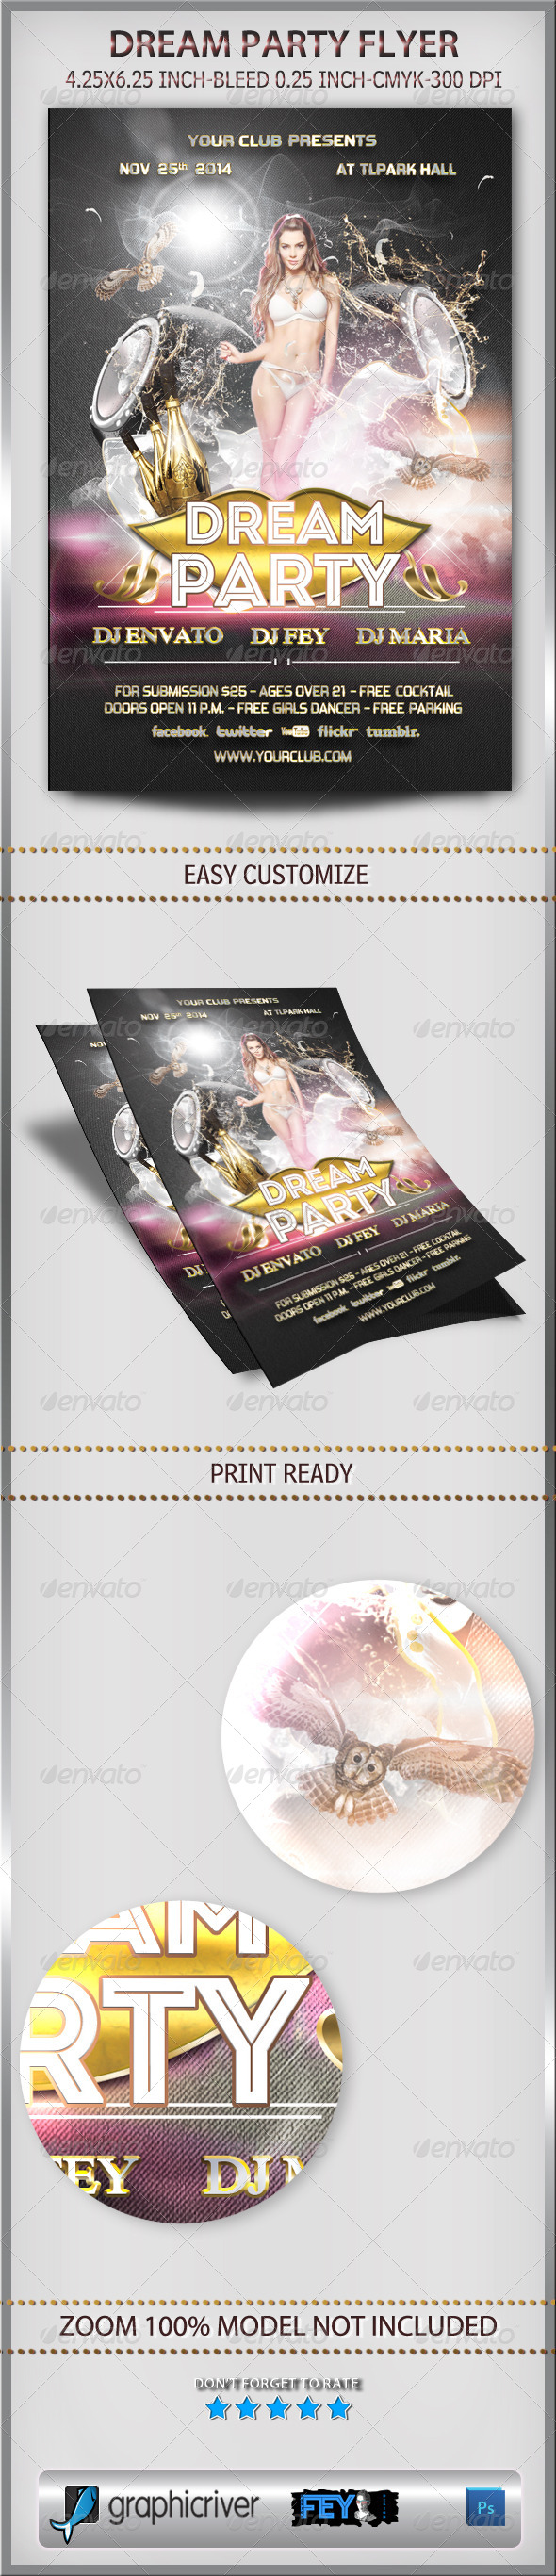 GraphicRiver Dream Party Flyer 6035899